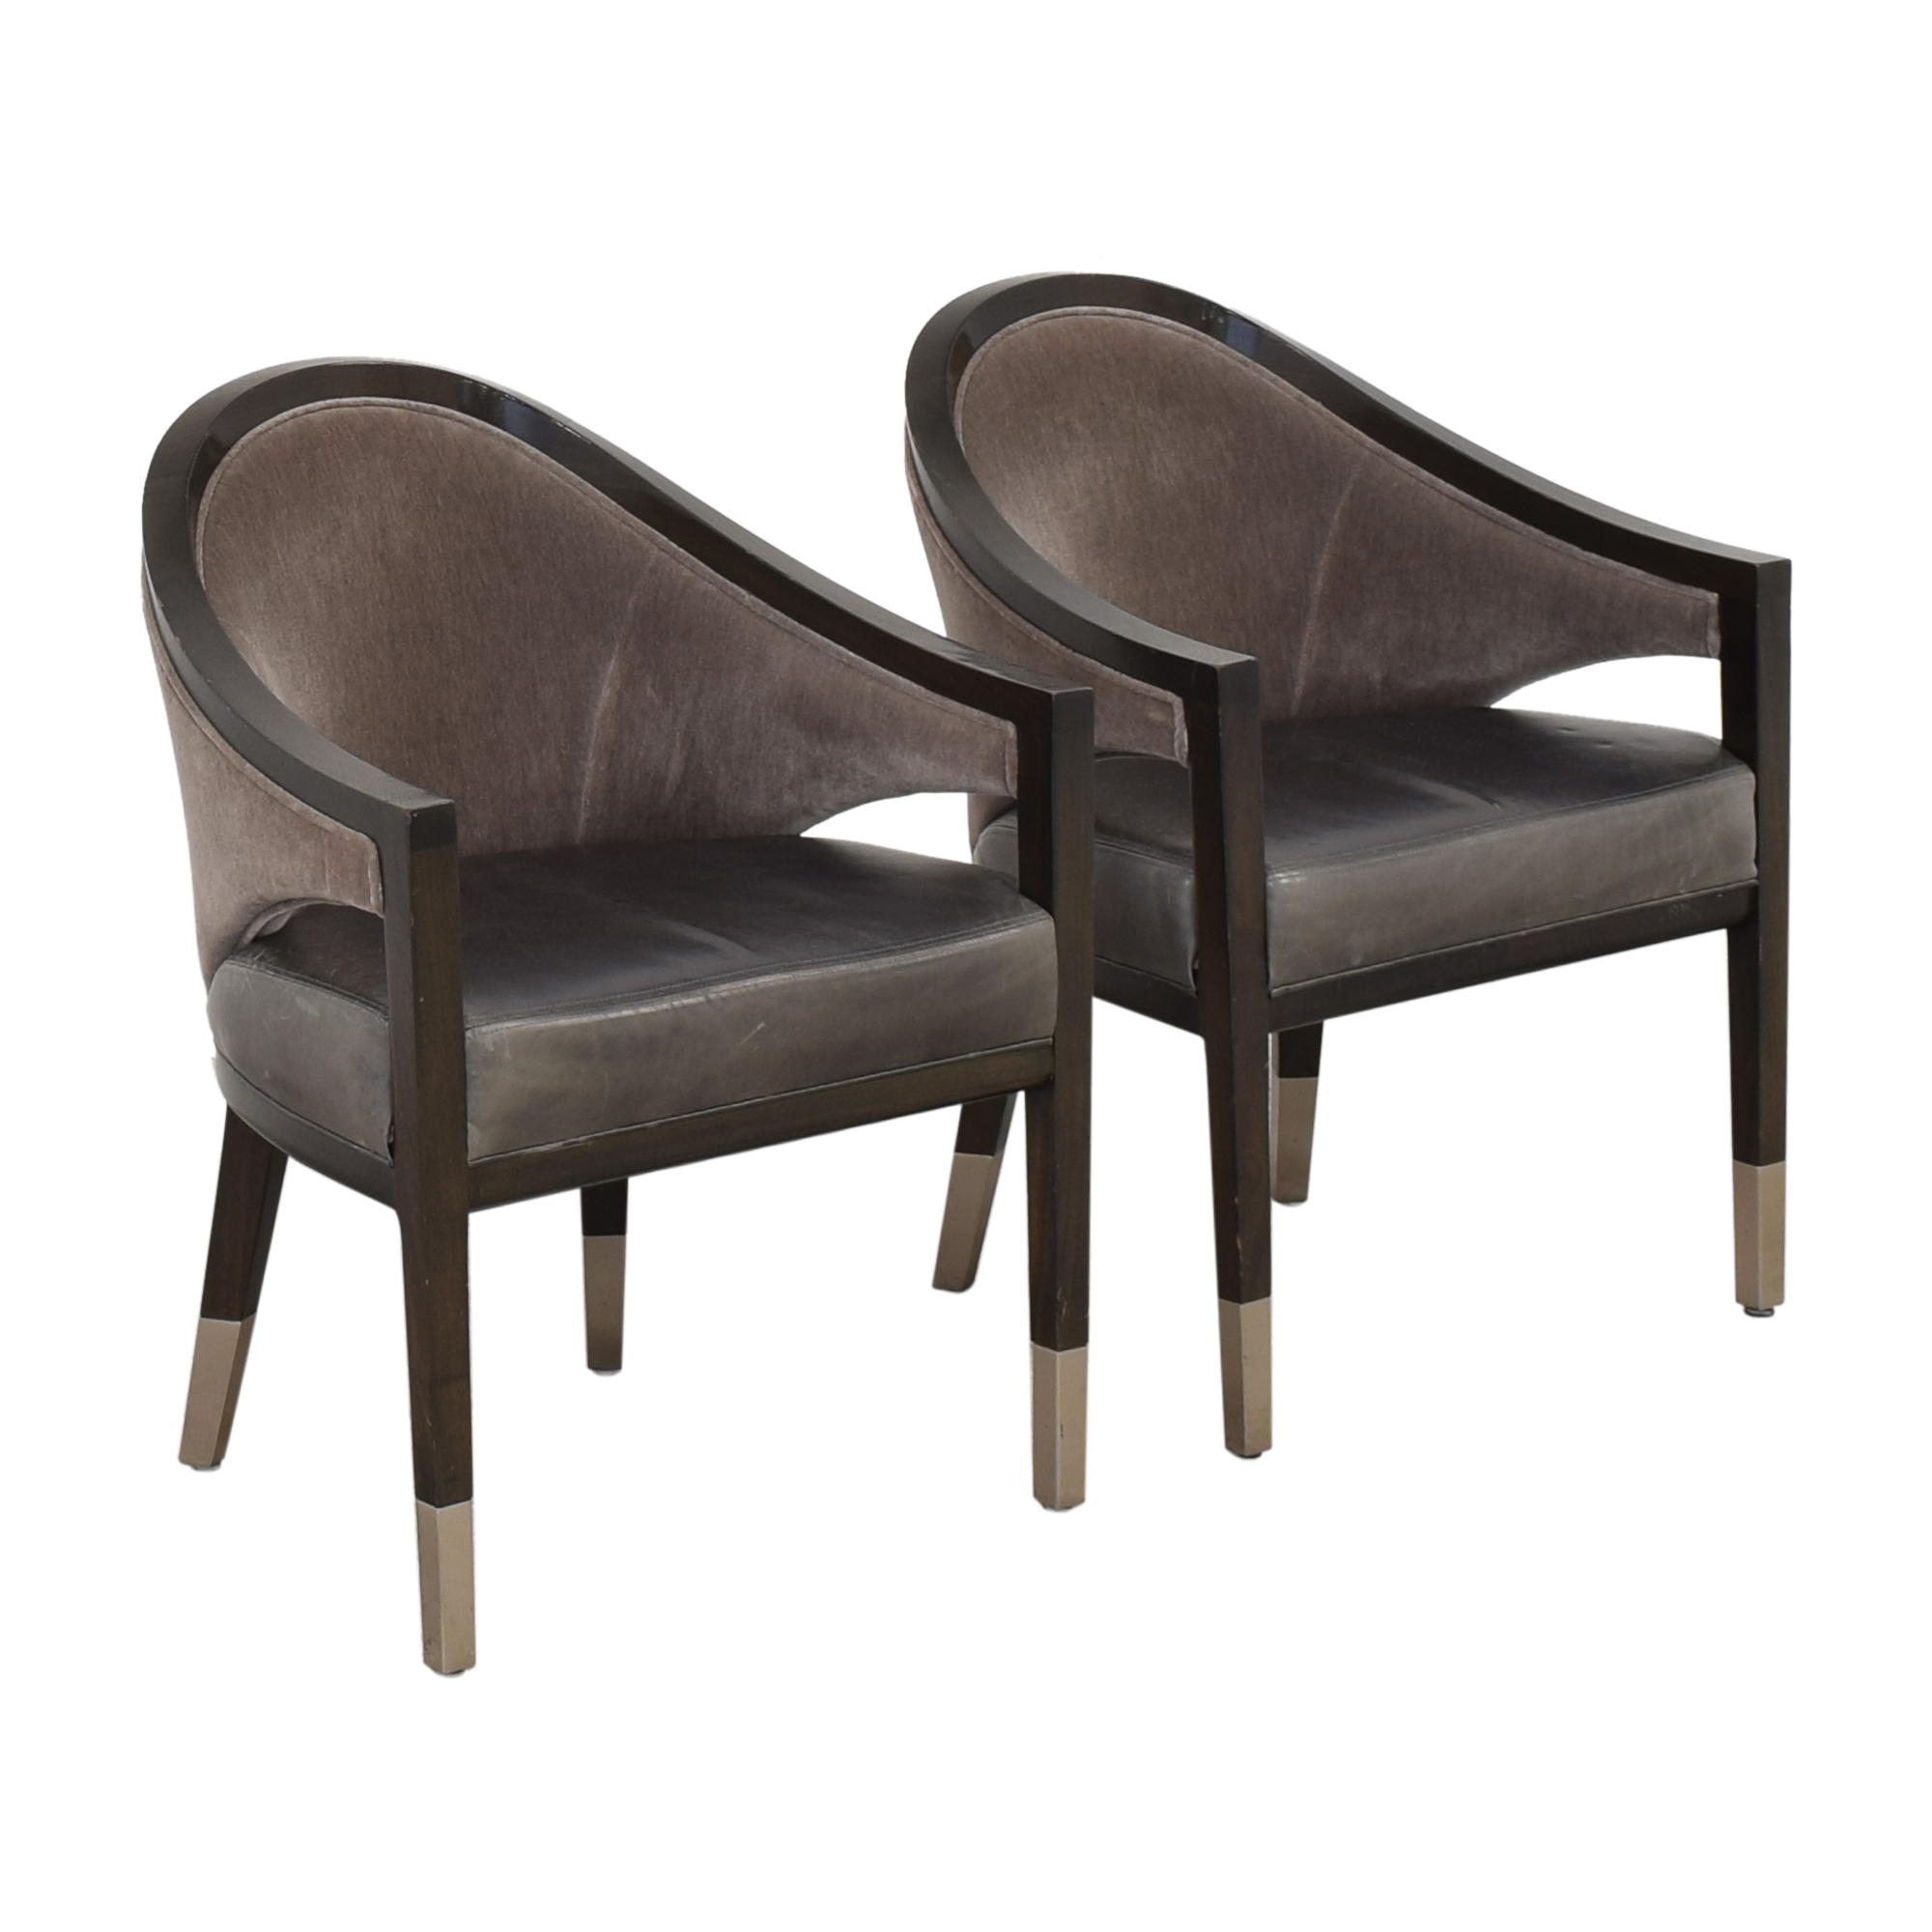 buy Allied Works Eleven Madison Park Dining Room Chairs Allied Form Works Dining Chairs